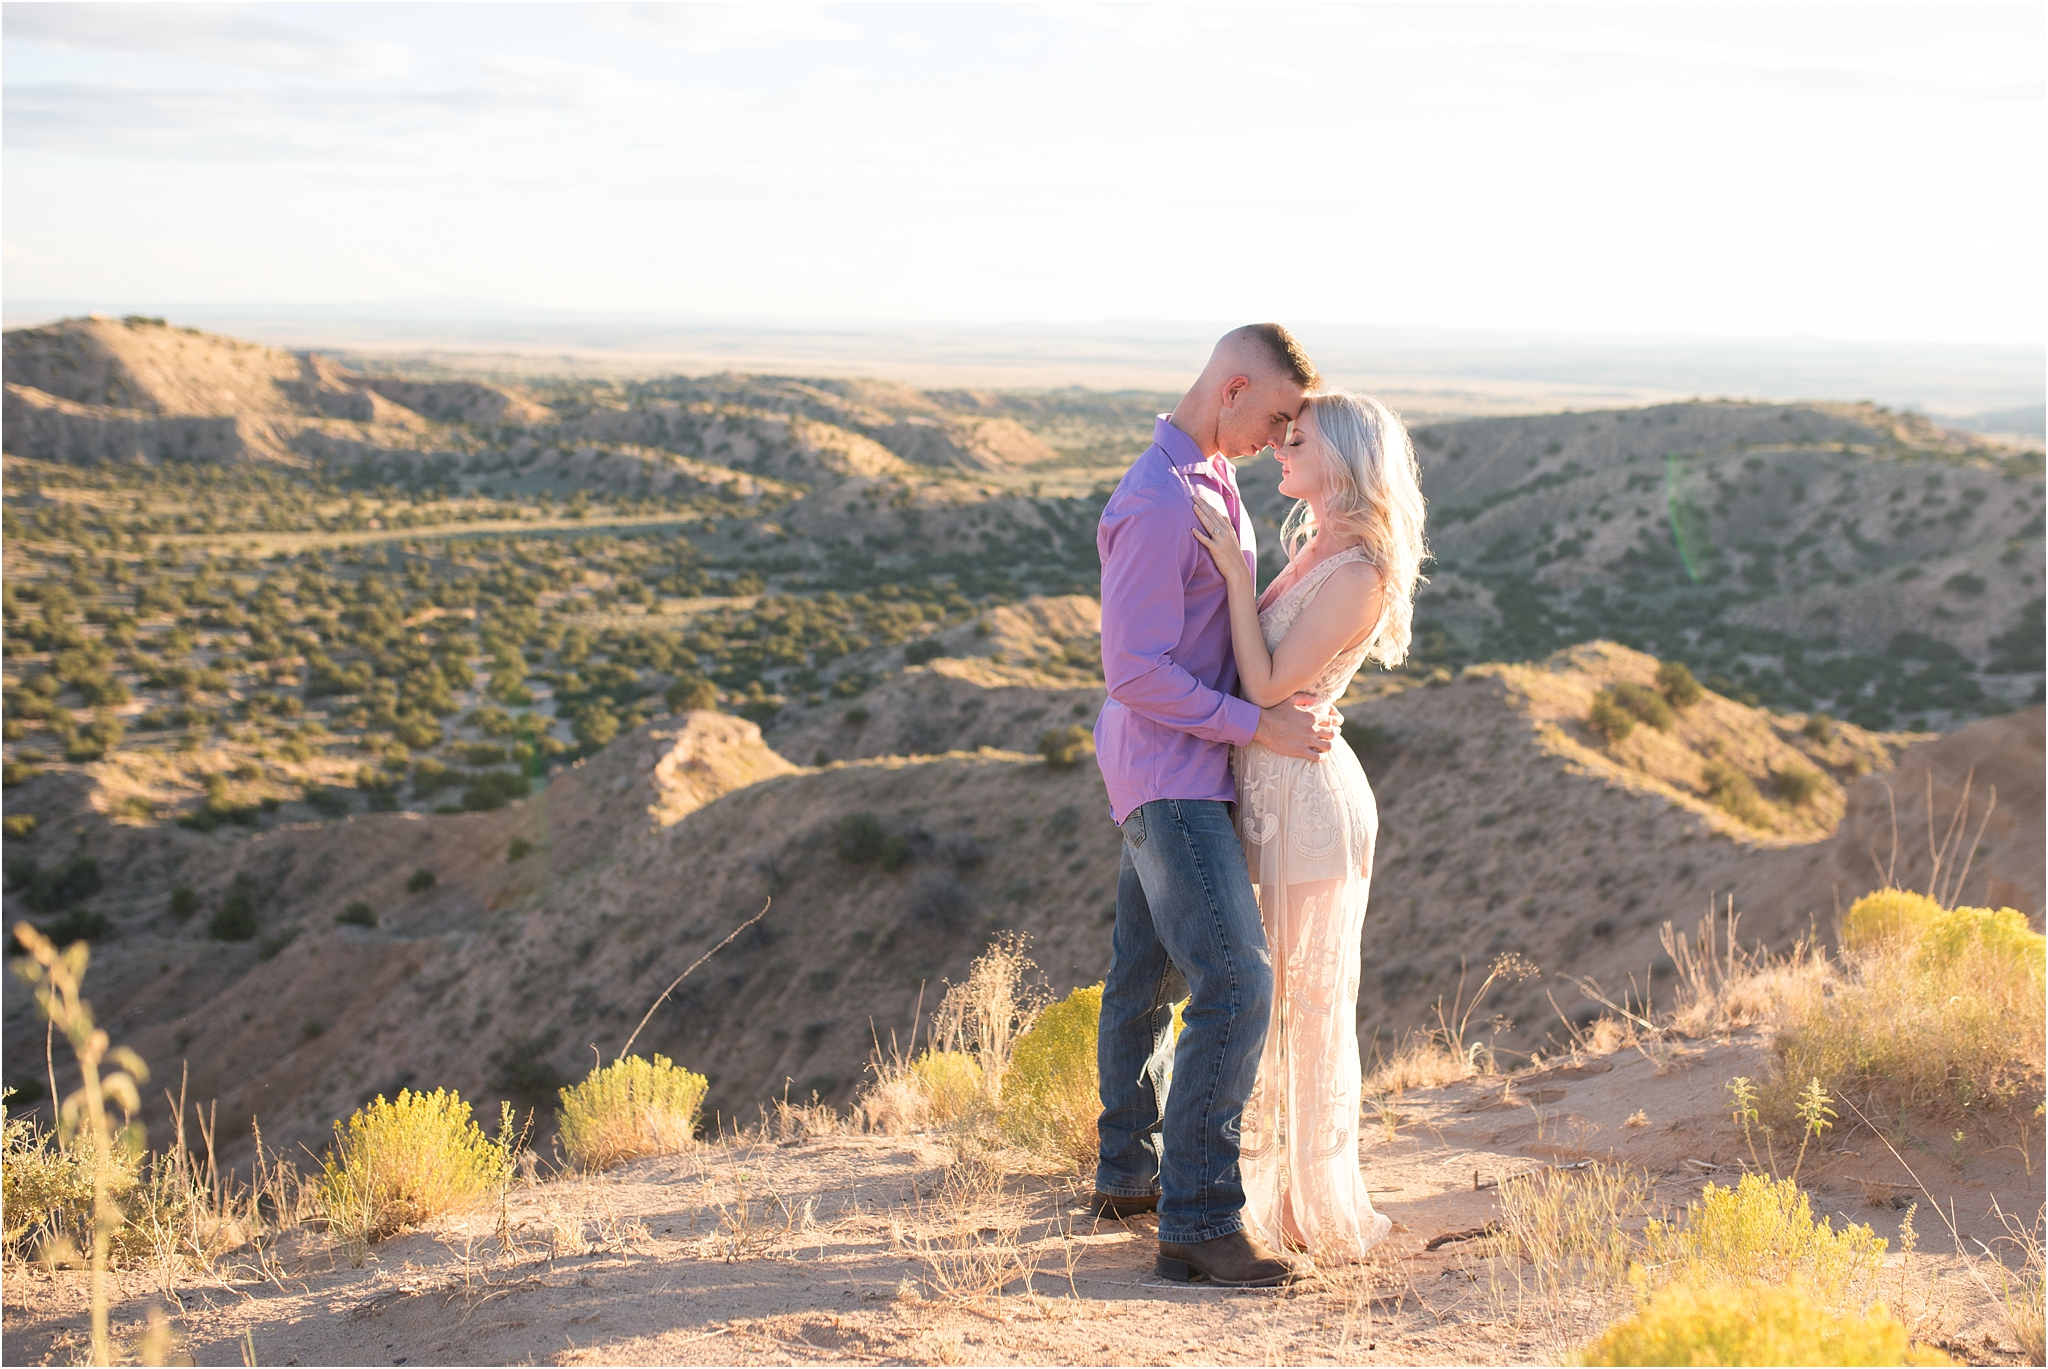 kayla kitts photography - new mexico wedding photographer - albuquerque engagement session_0011.jpg